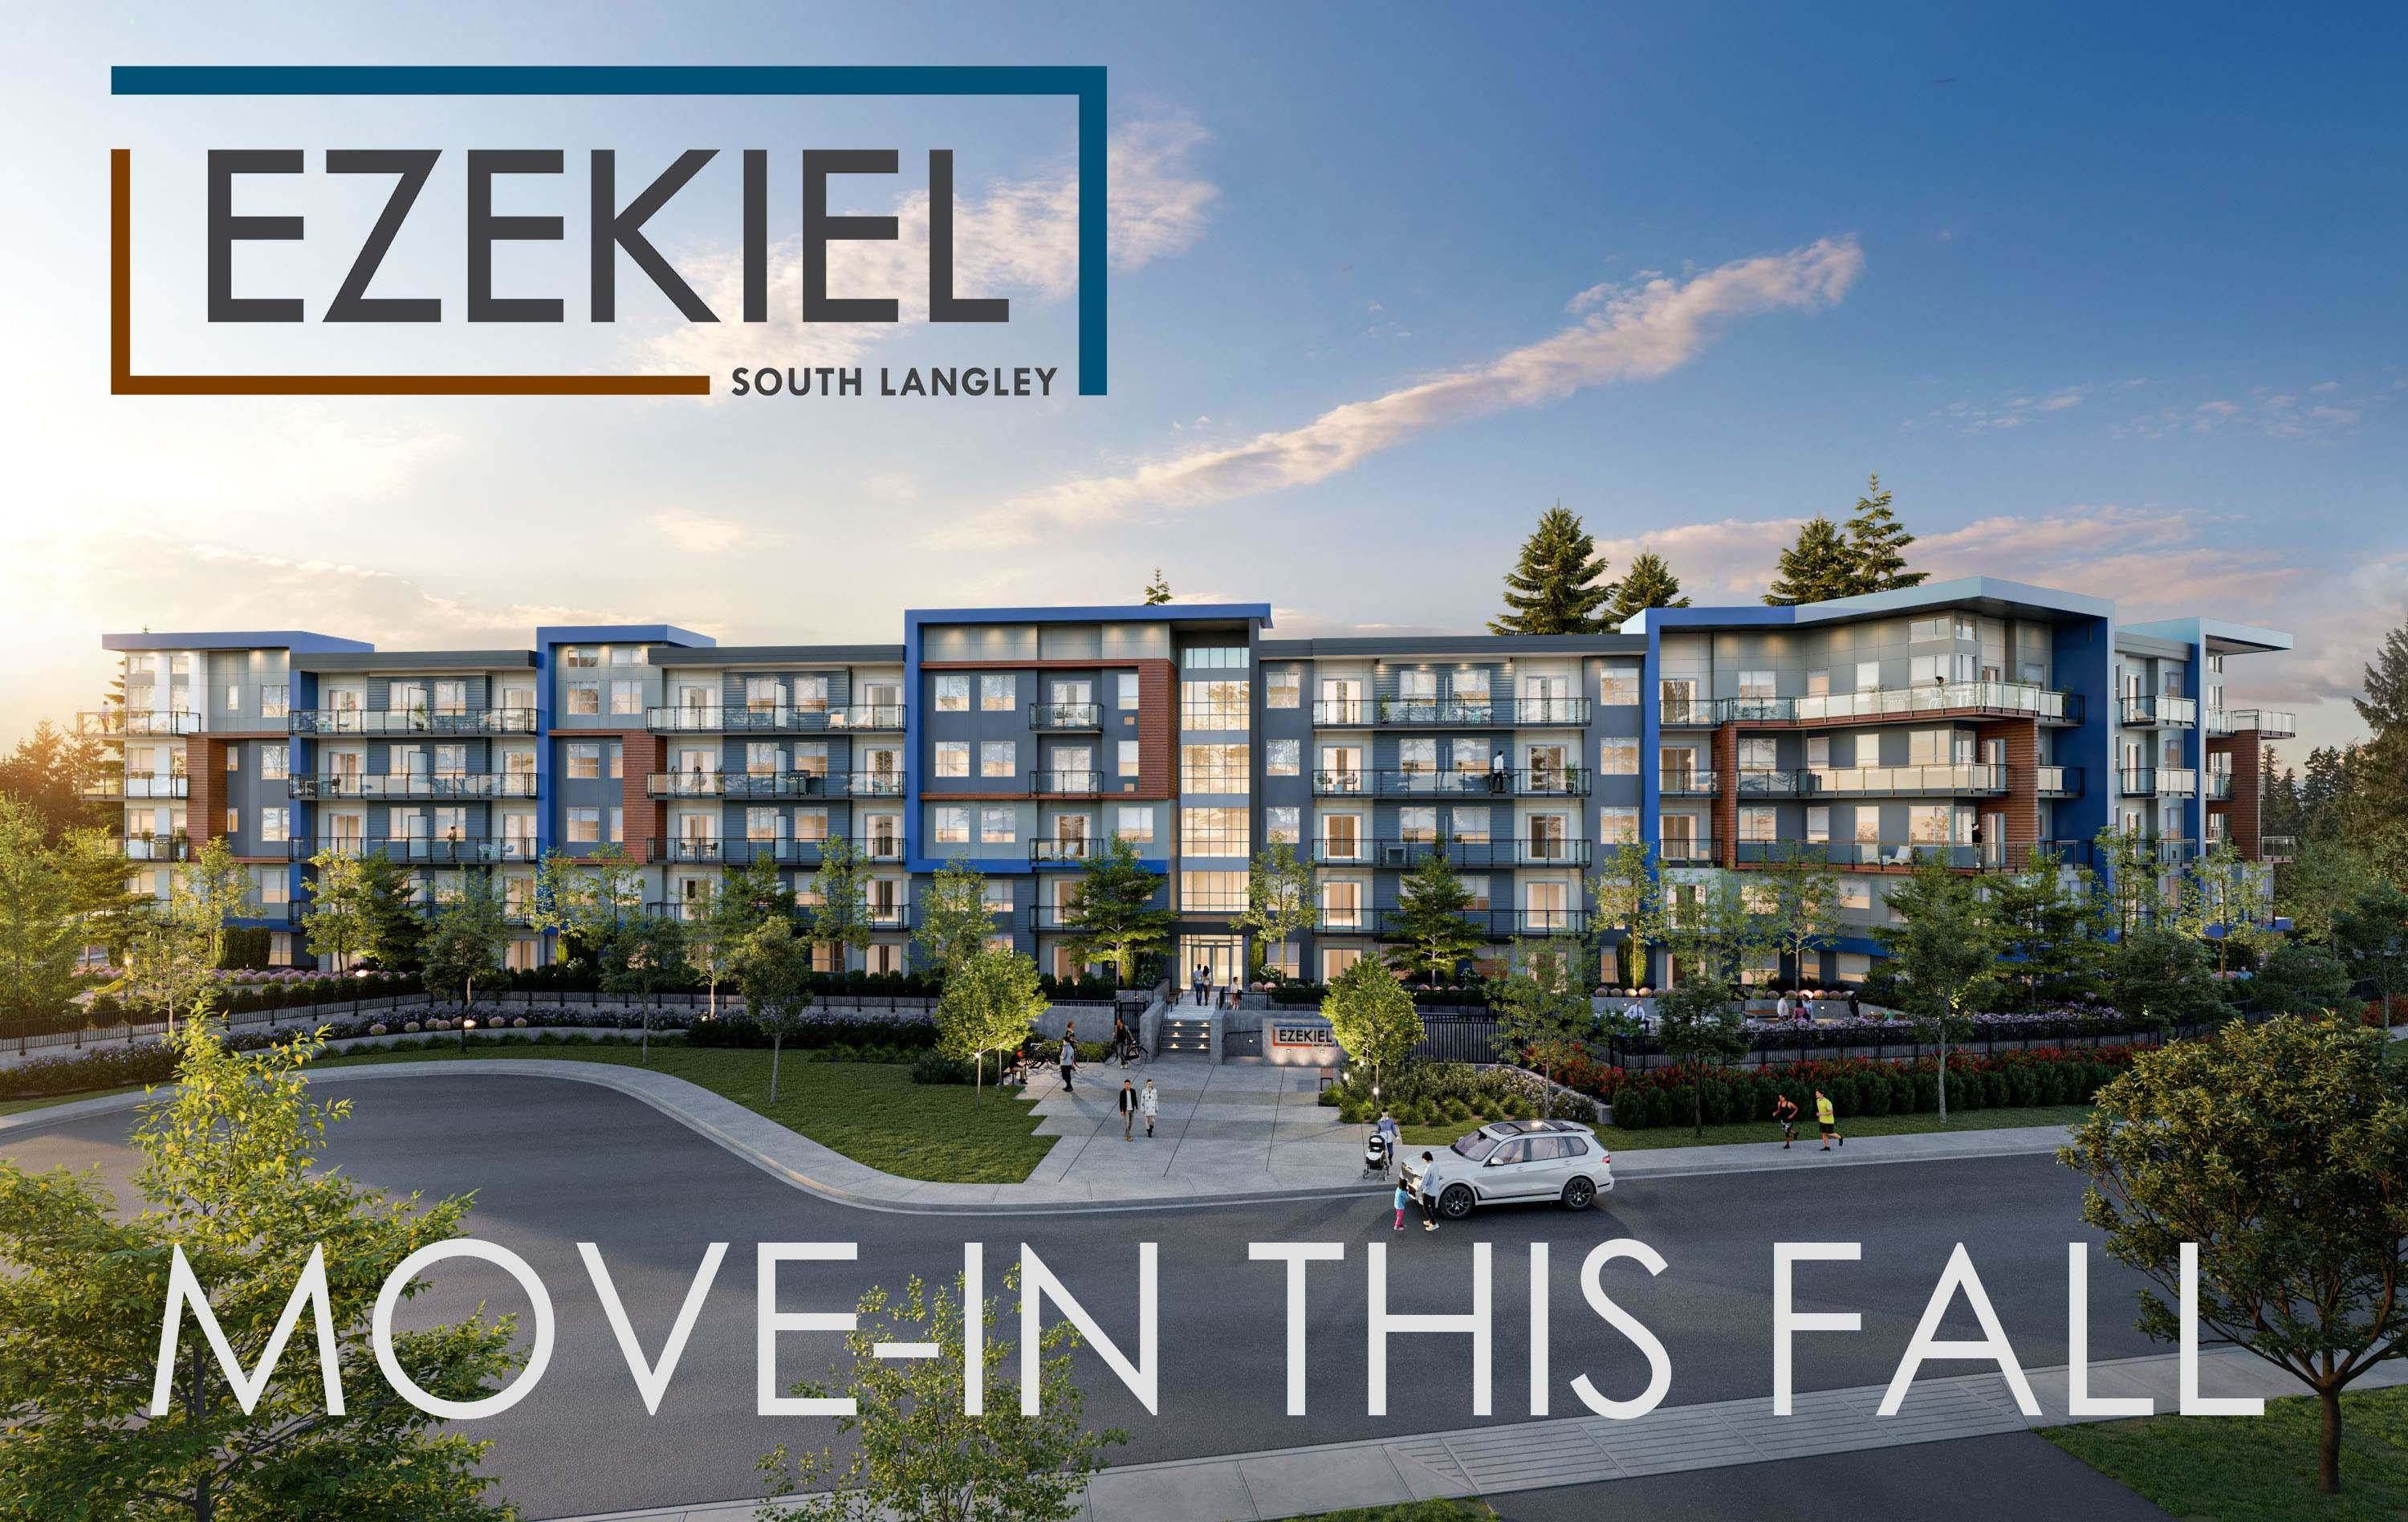 """Main Photo: 509 5486 199A Street in Langley: Langley City Condo for sale in """"Ezekiel"""" : MLS®# R2612120"""